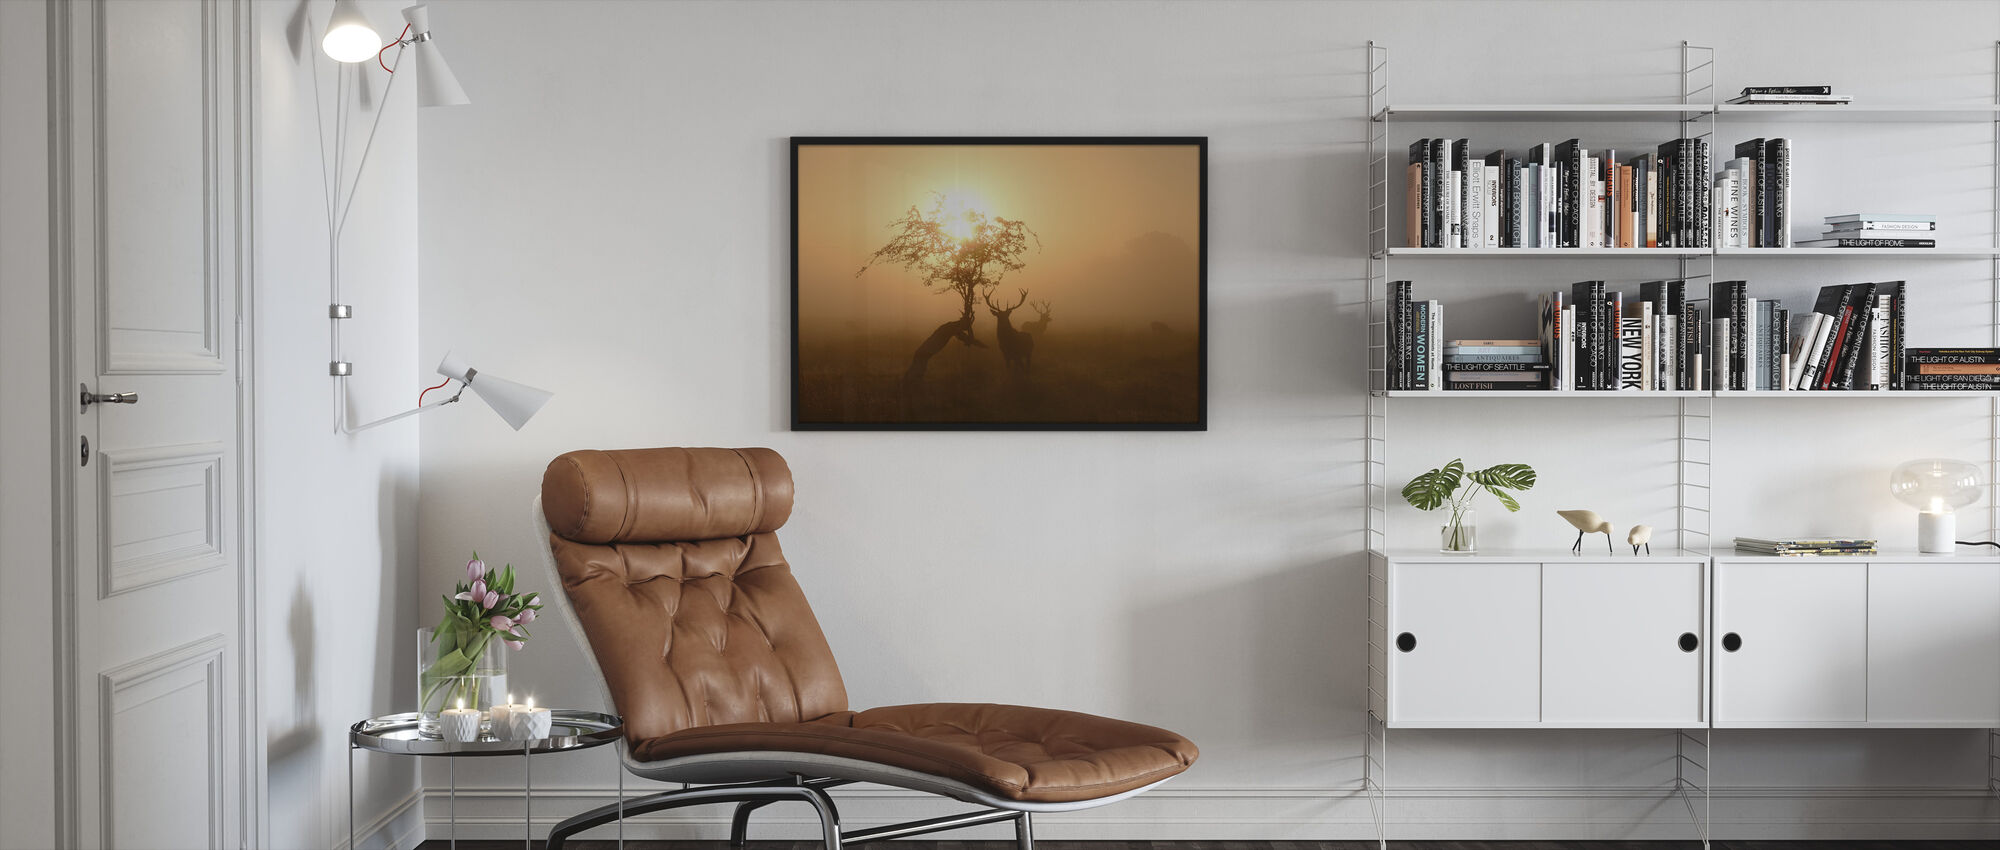 Sun and Deers - Framed print - Living Room